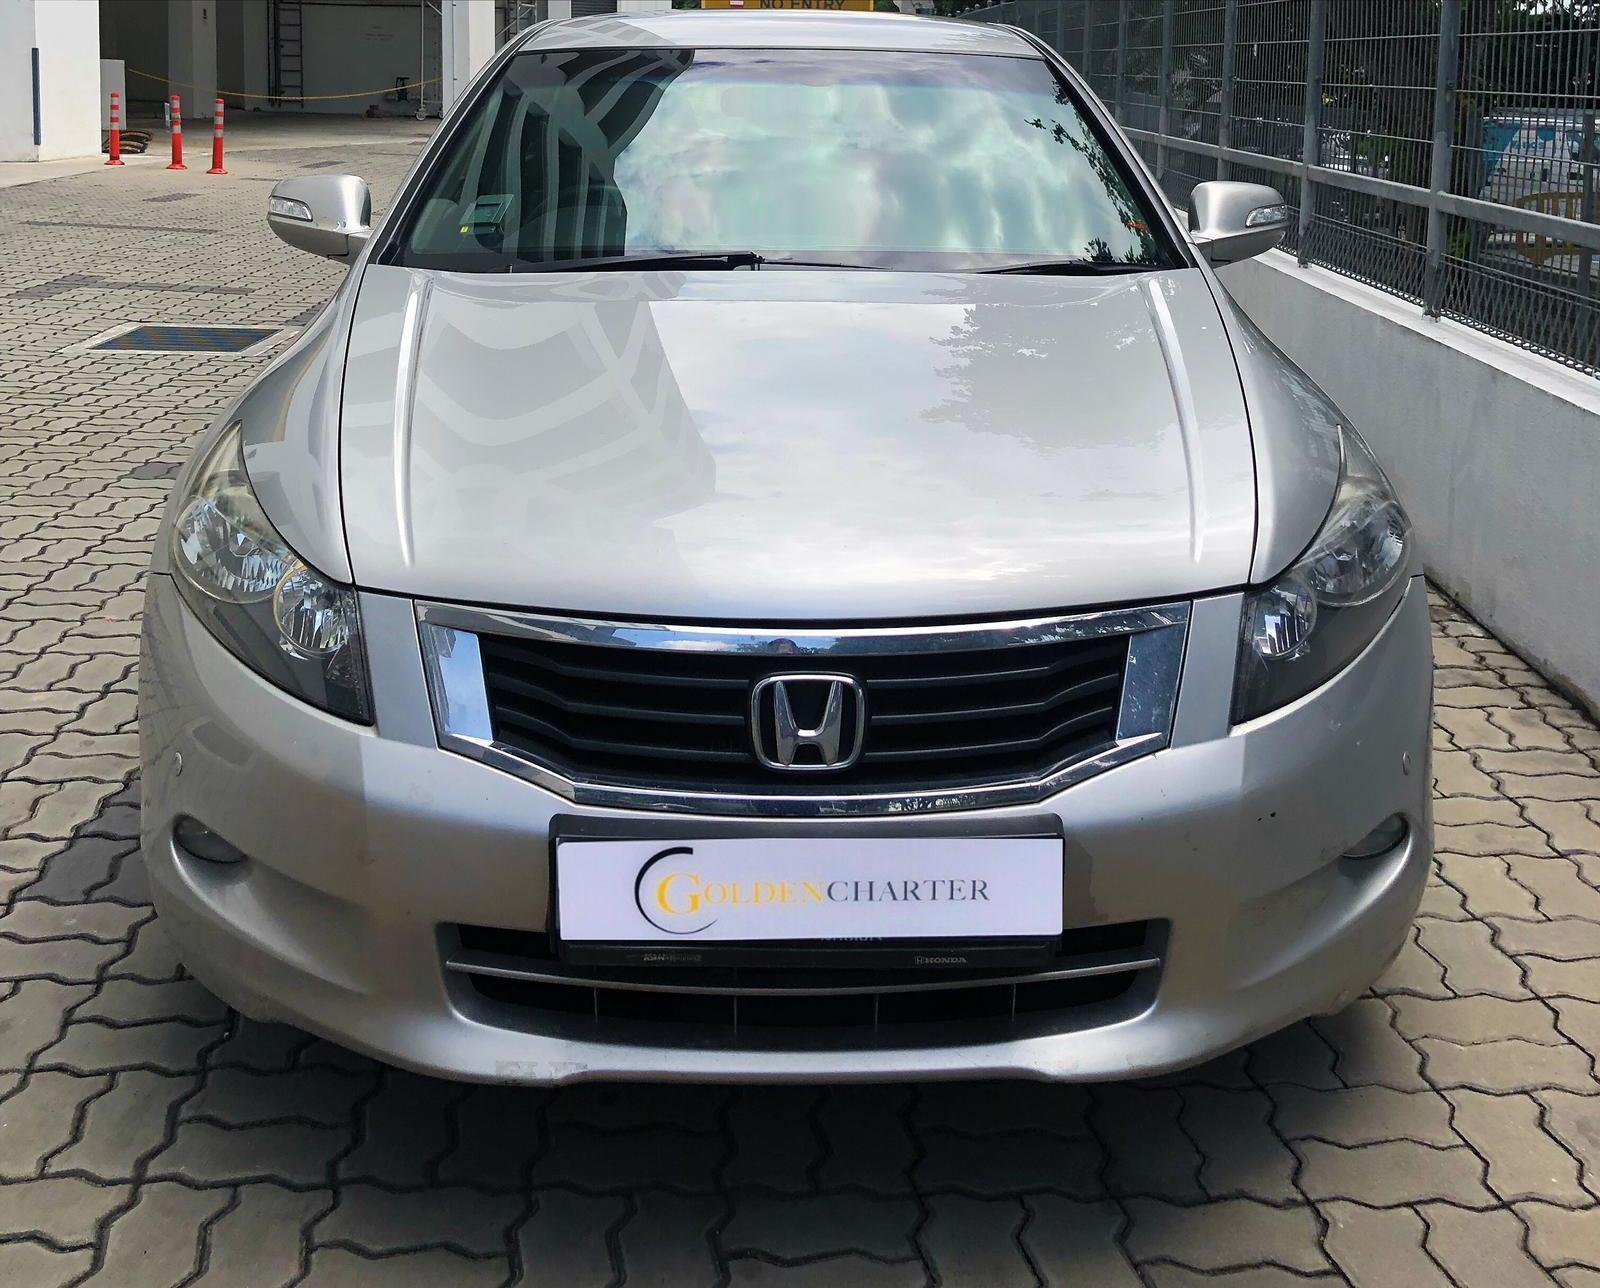 Honda Accord CHEAP Rental for Grab GoJek or Personal use